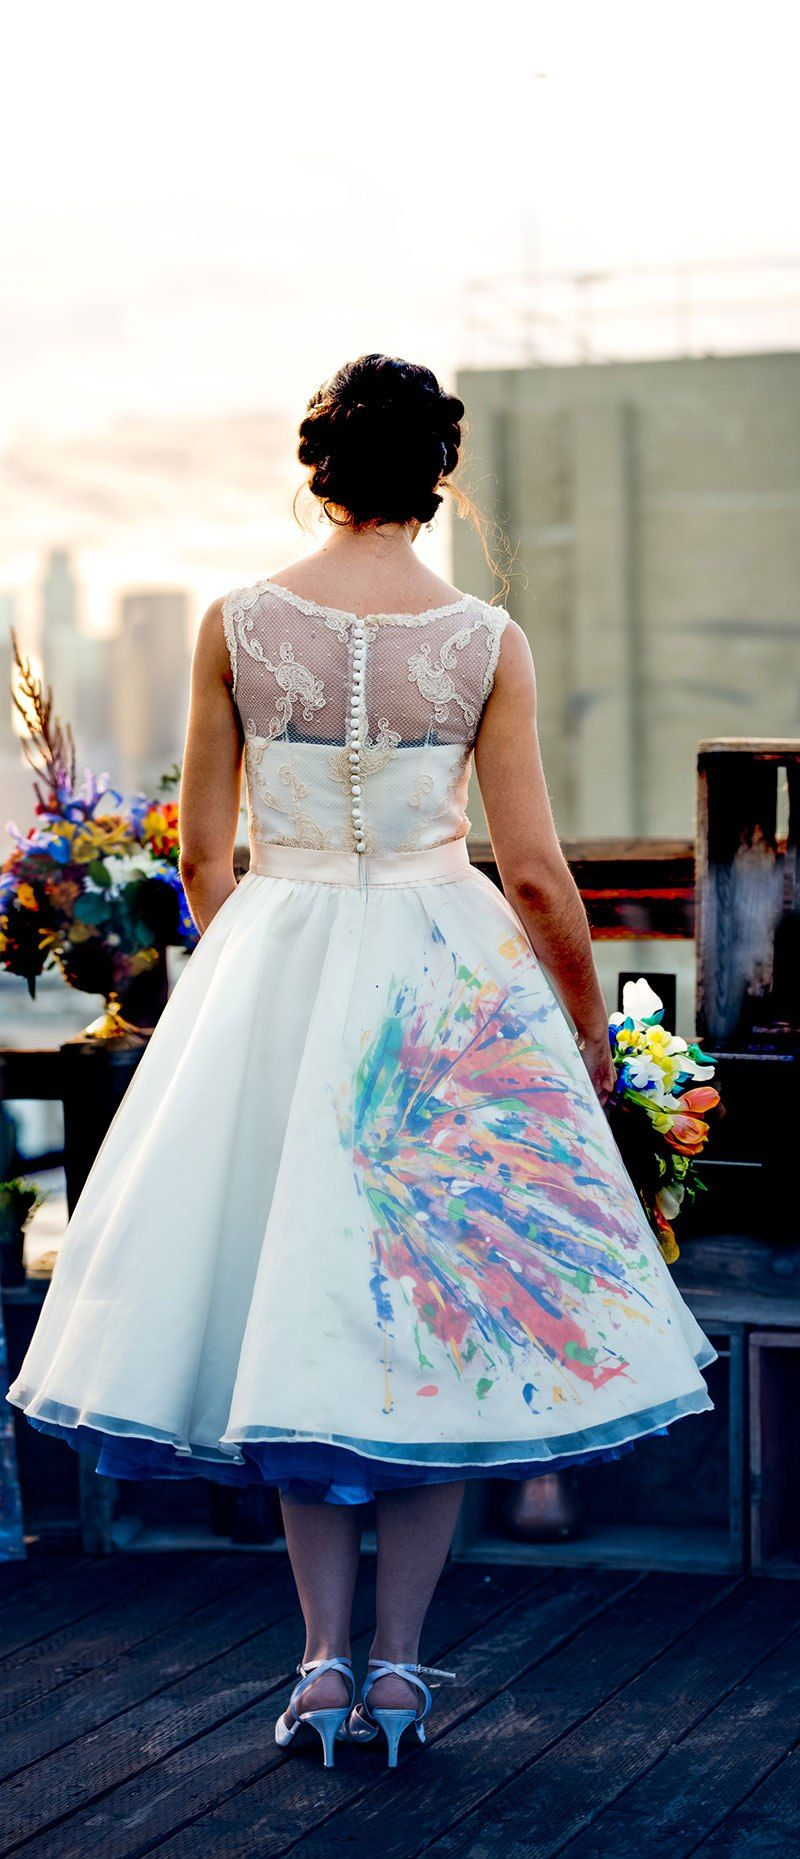 The groom painted the dress at this abstract artinspired vow